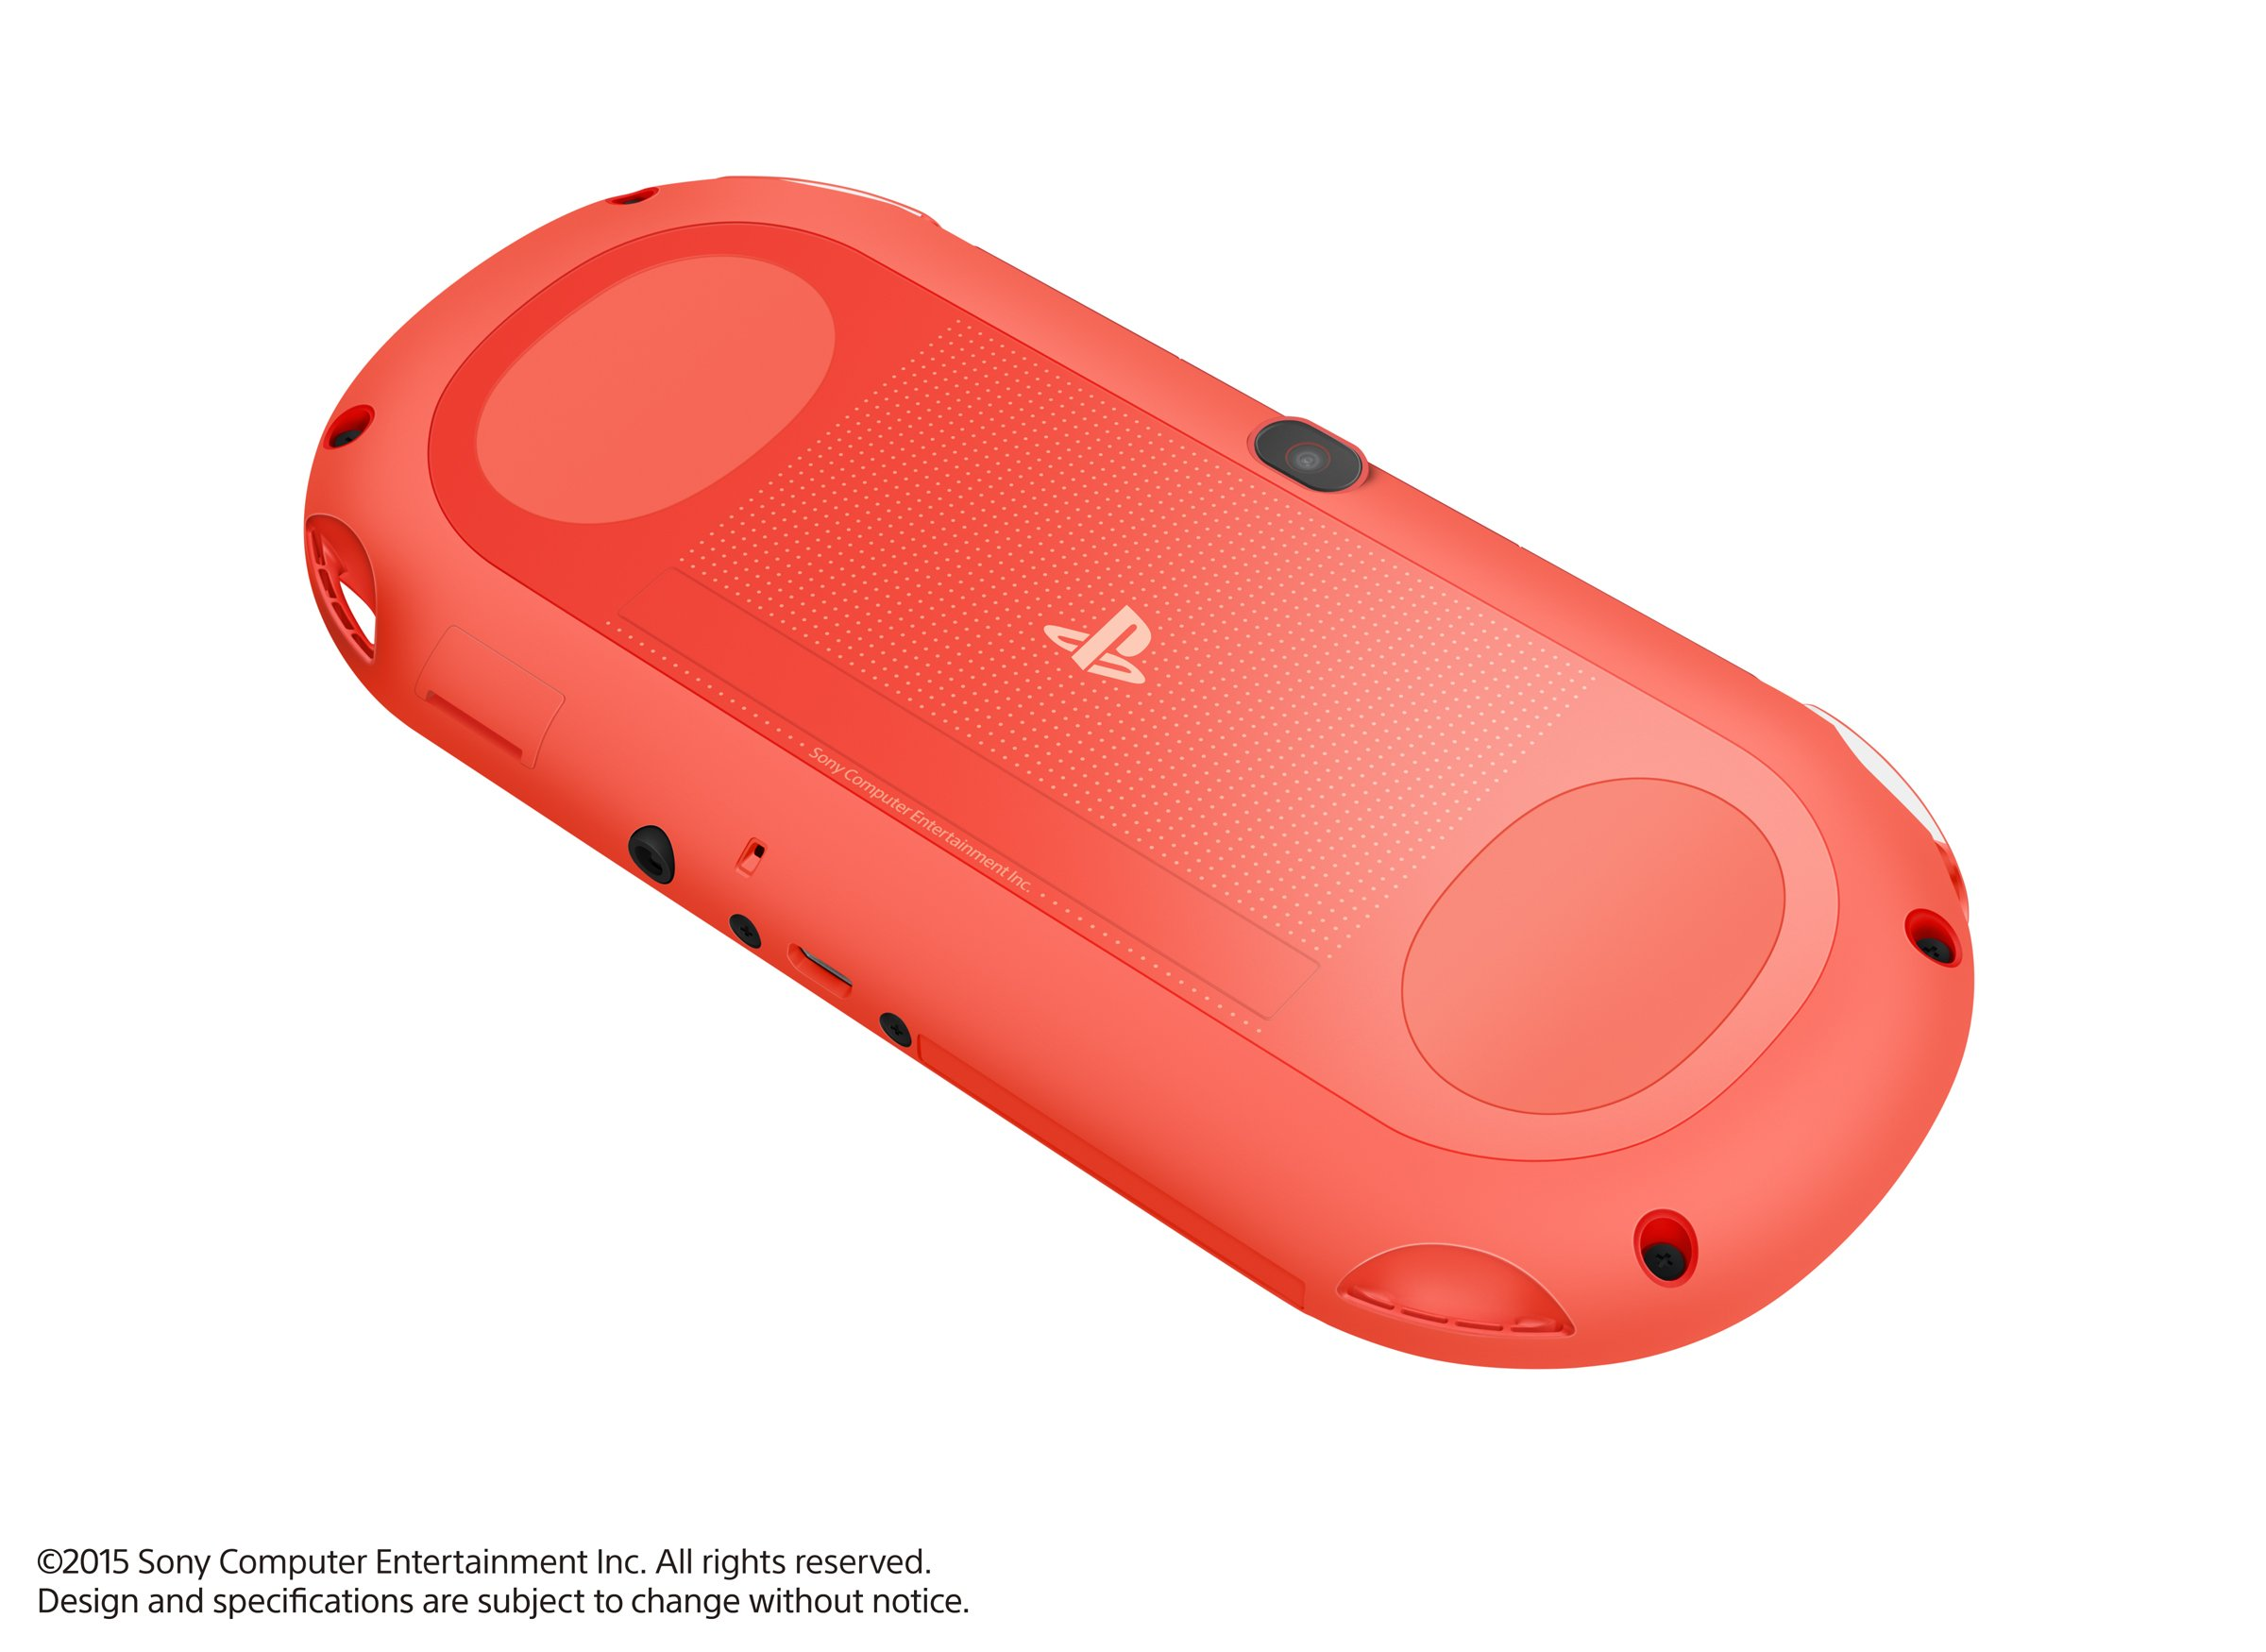 PlayStation Vita Wi-Fi model Neon Orange (PCH-2000ZA24) Japanese Ver. Japan Import by Sony (Image #5)